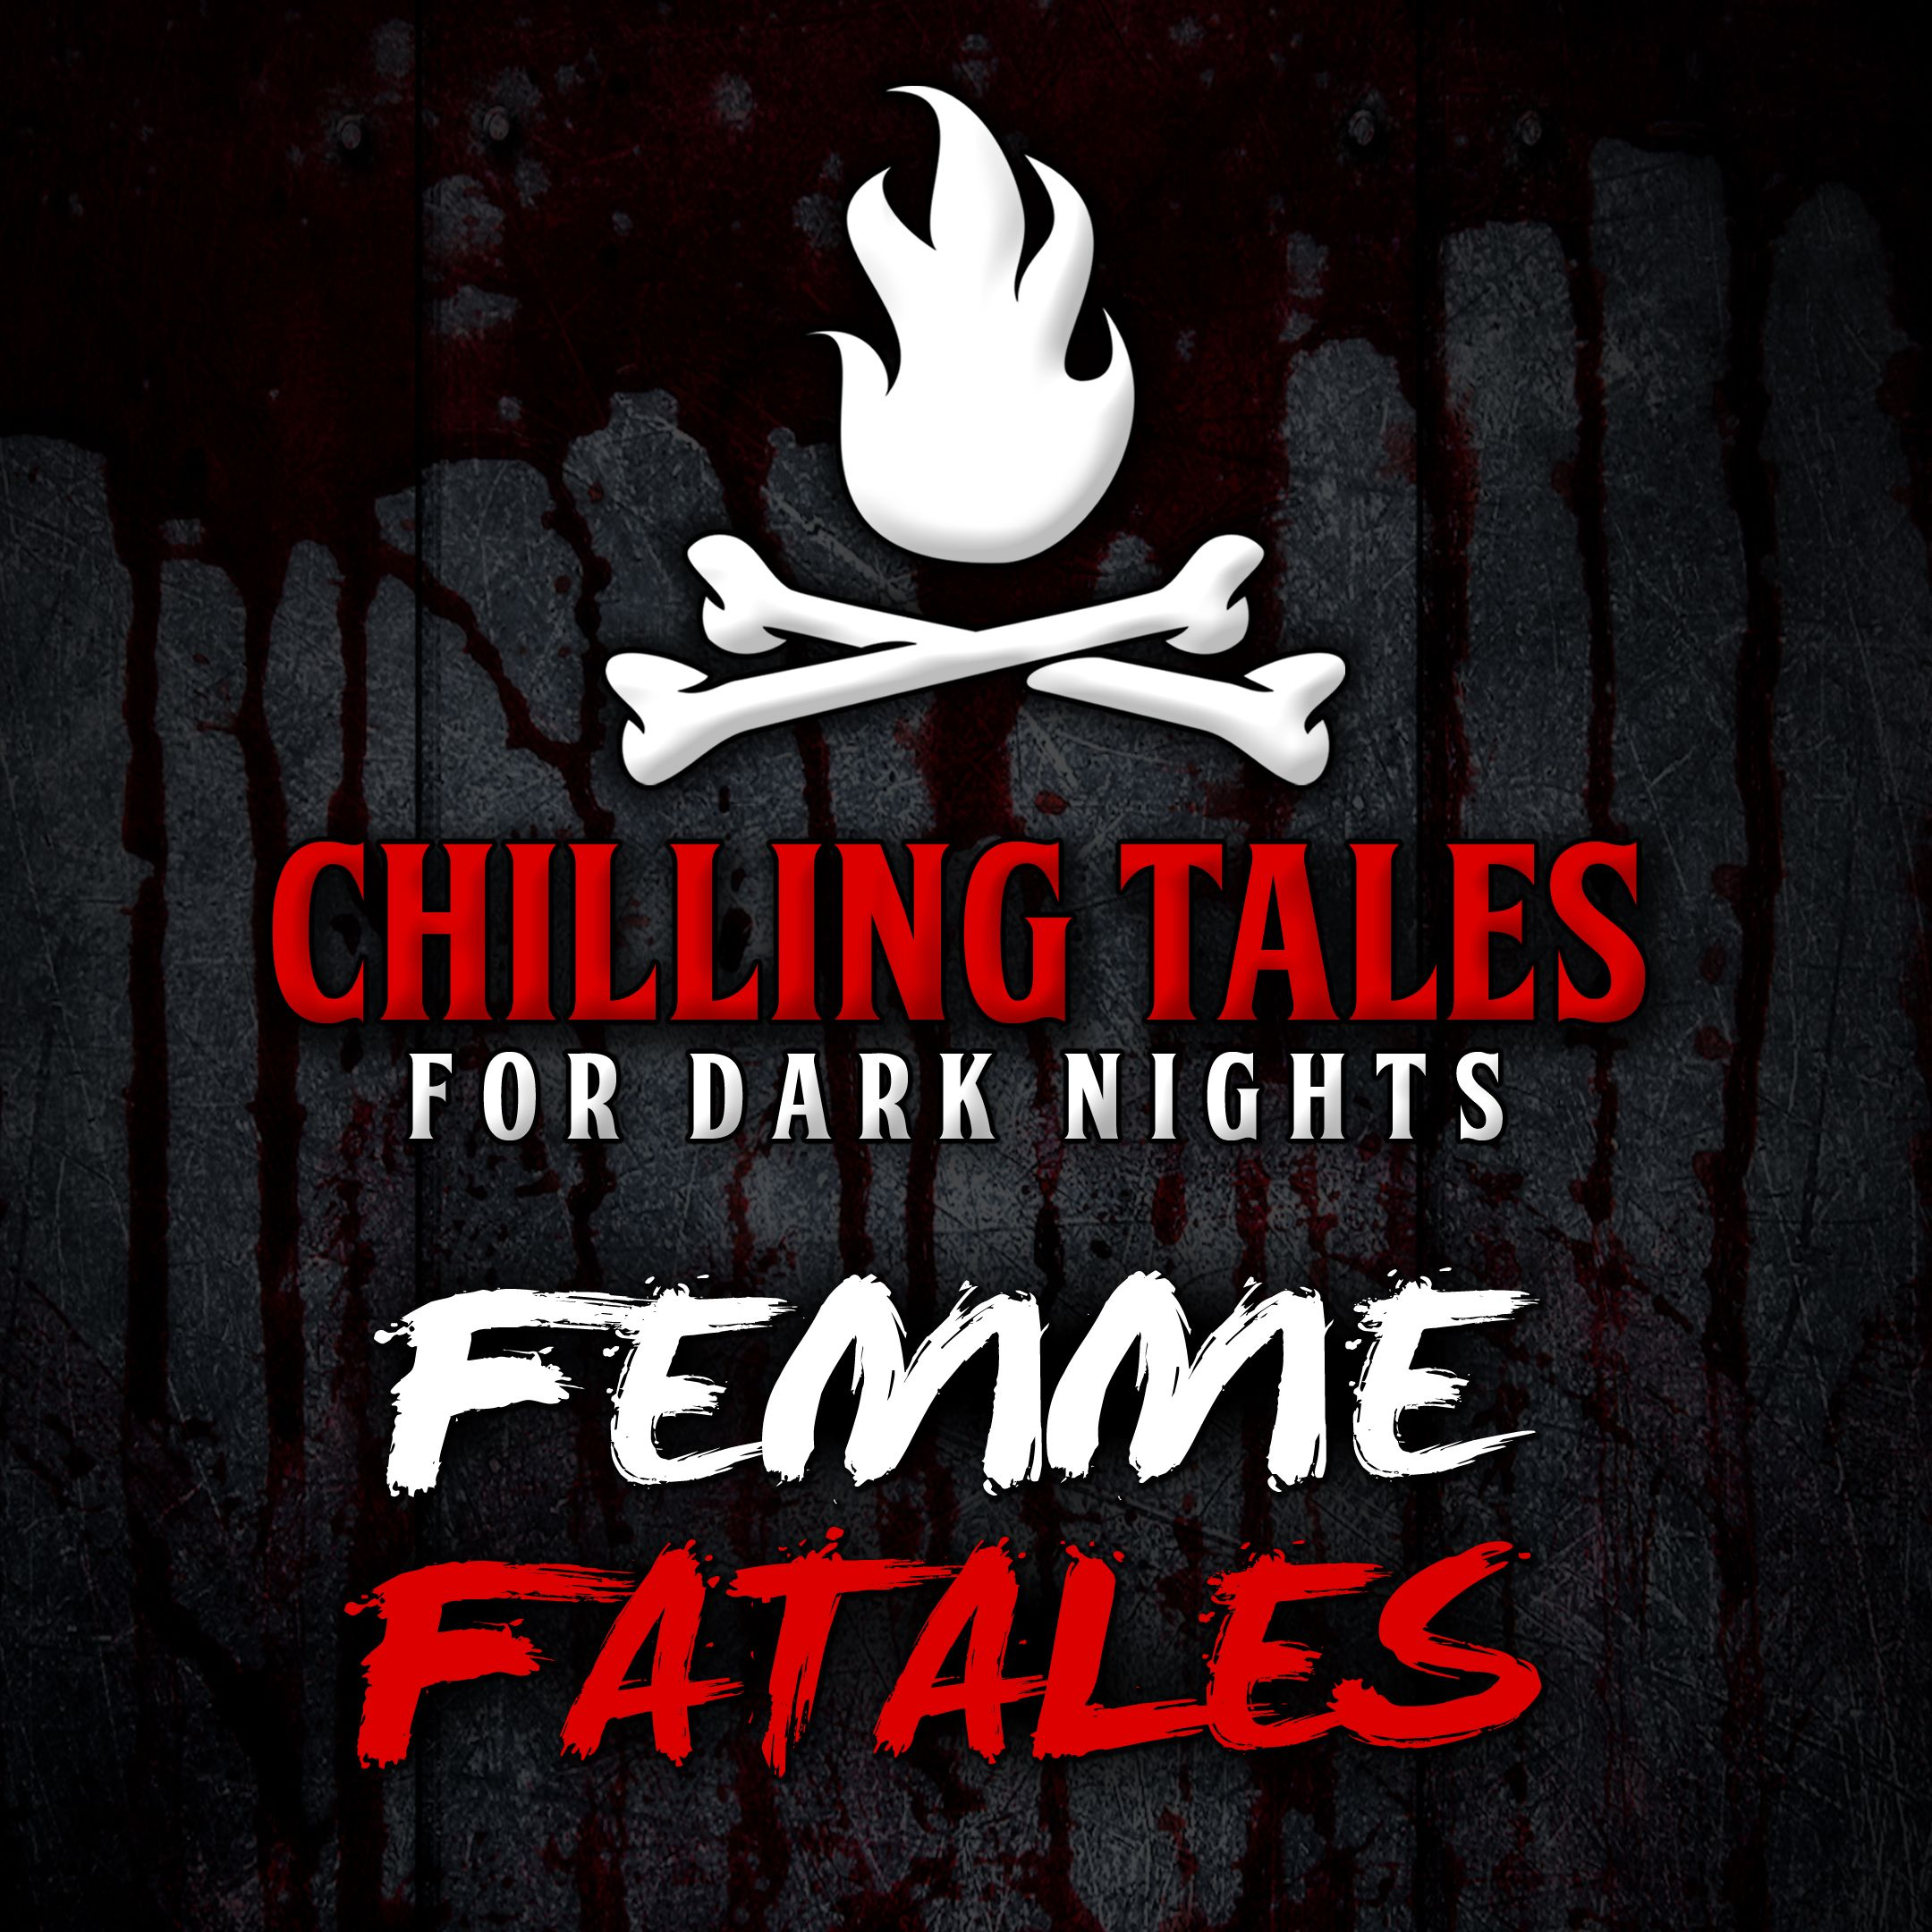 62: Femme Fatales – Chilling Tales for Dark Nights